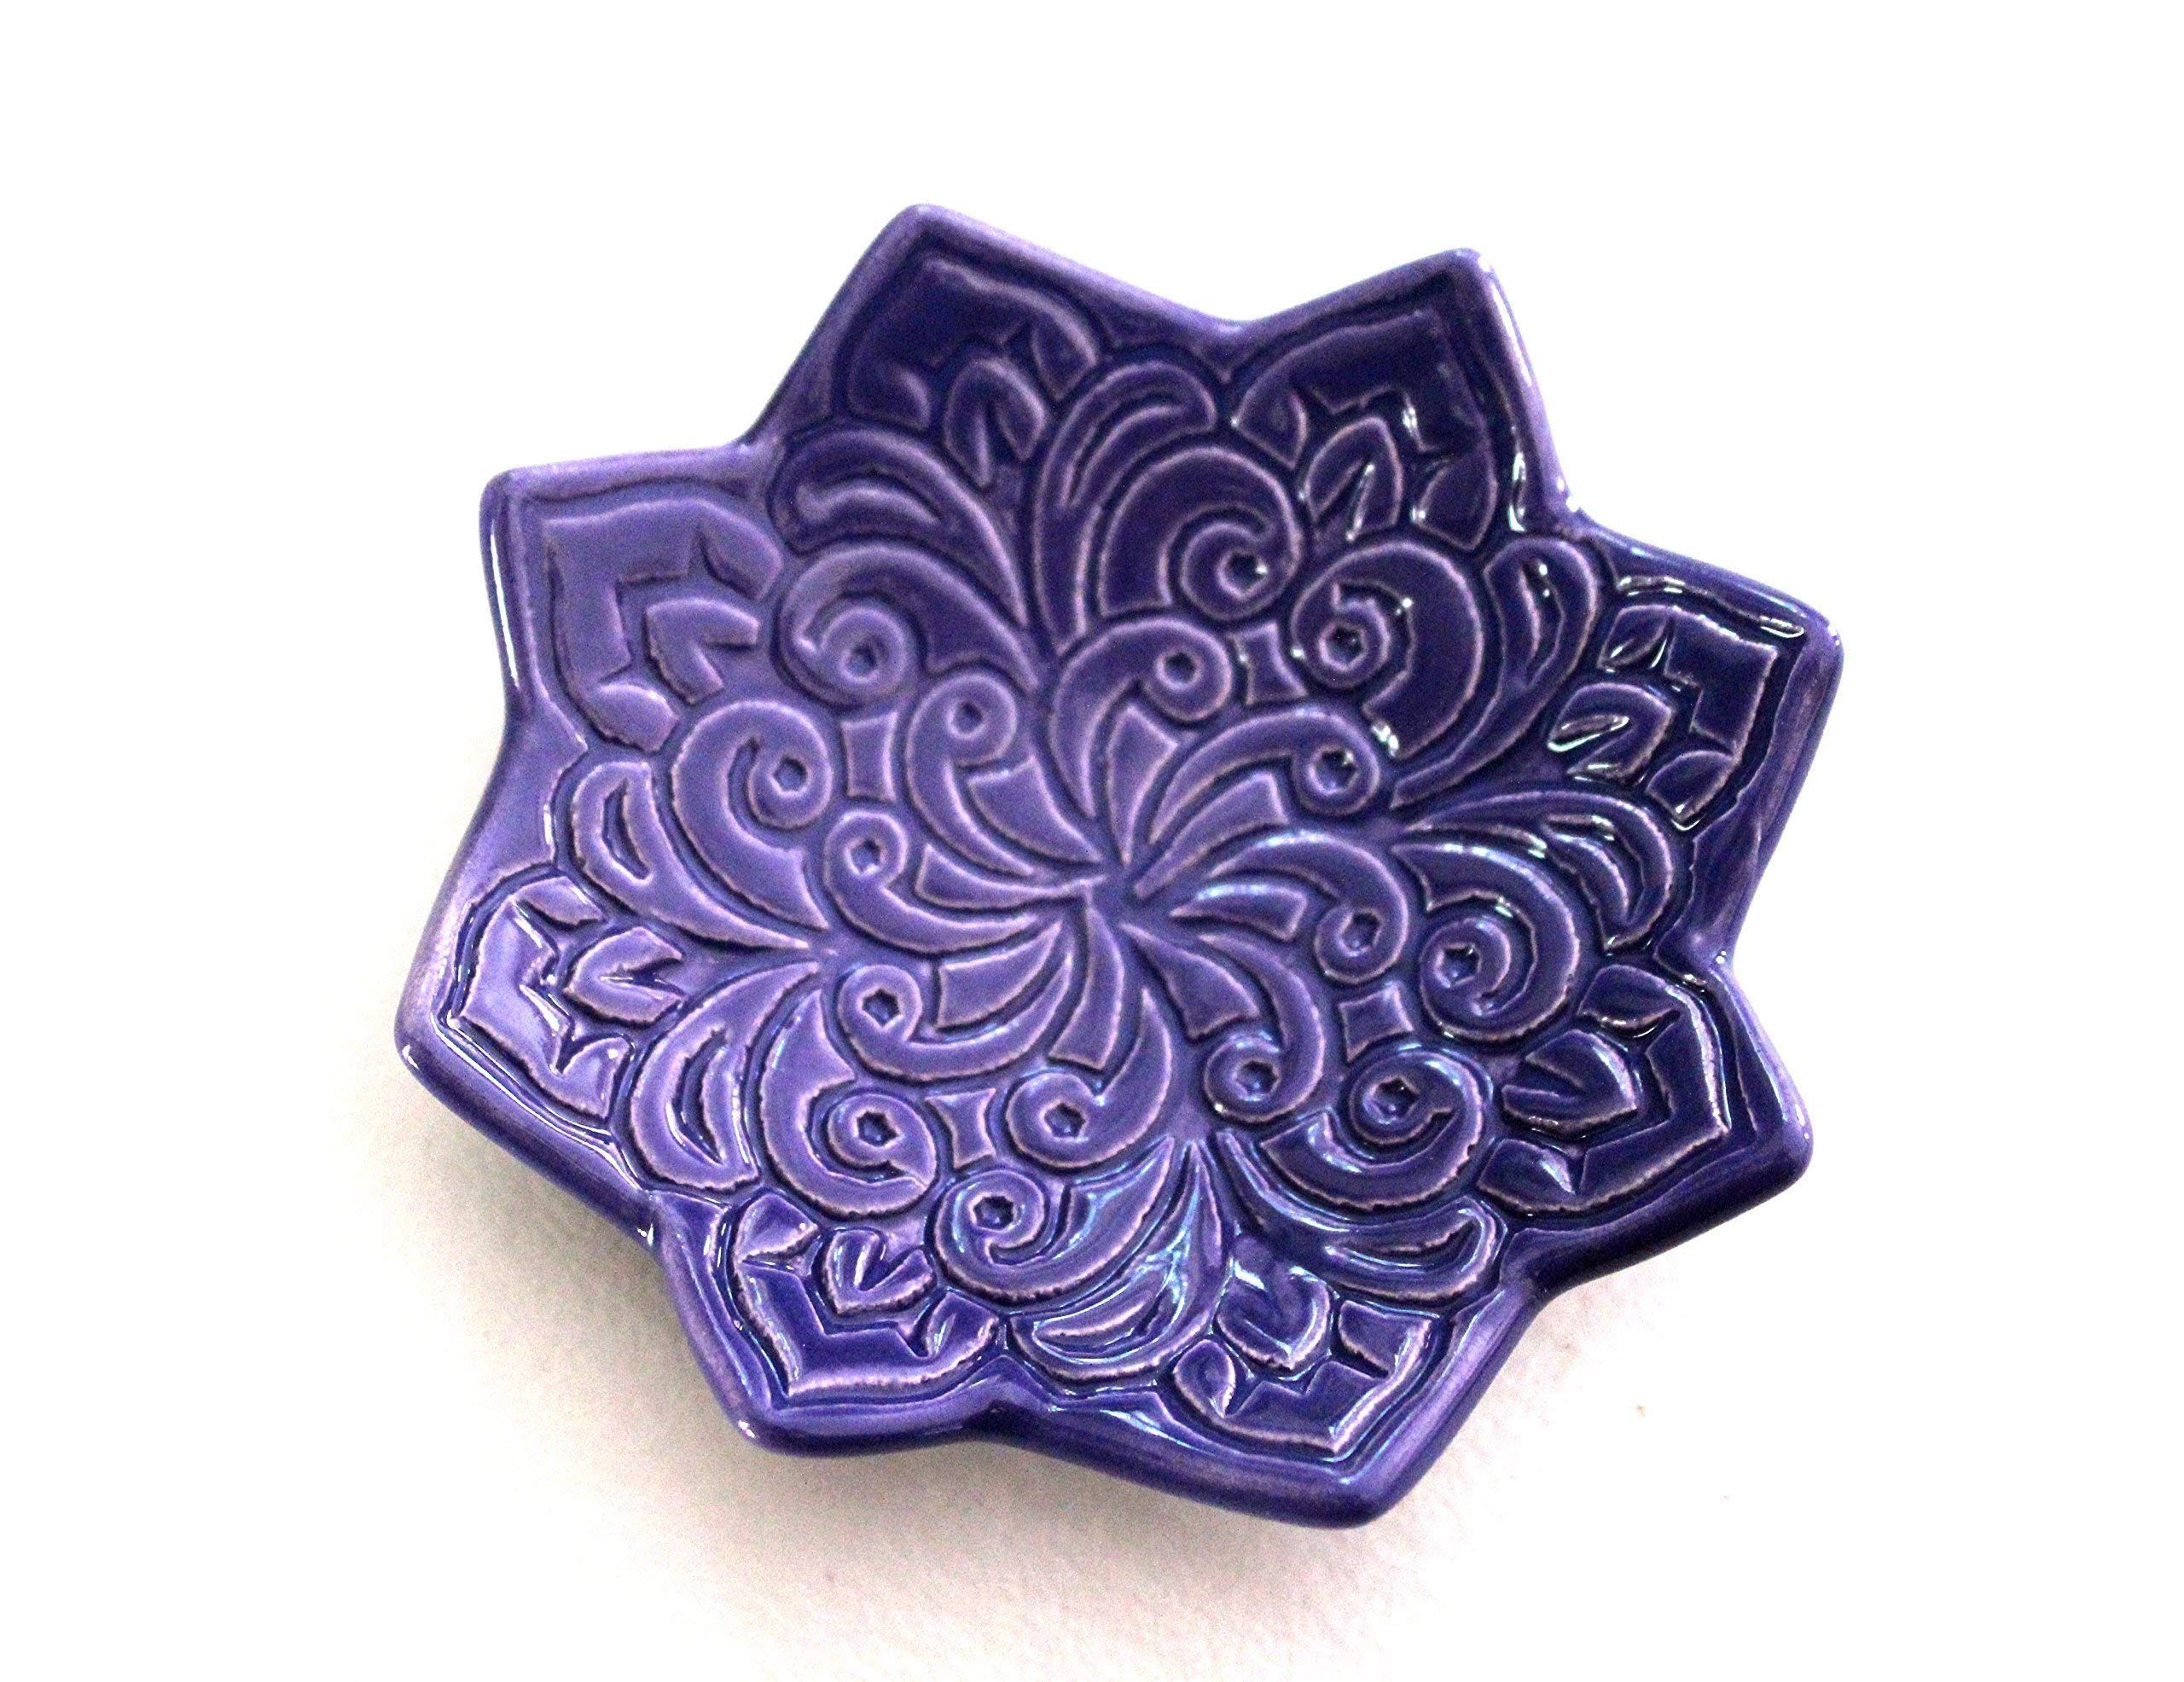 Indigo Star Shaped Ring Dish - Jewelry Holder, stamped with Boho floral pattern. Handmade in Colorado